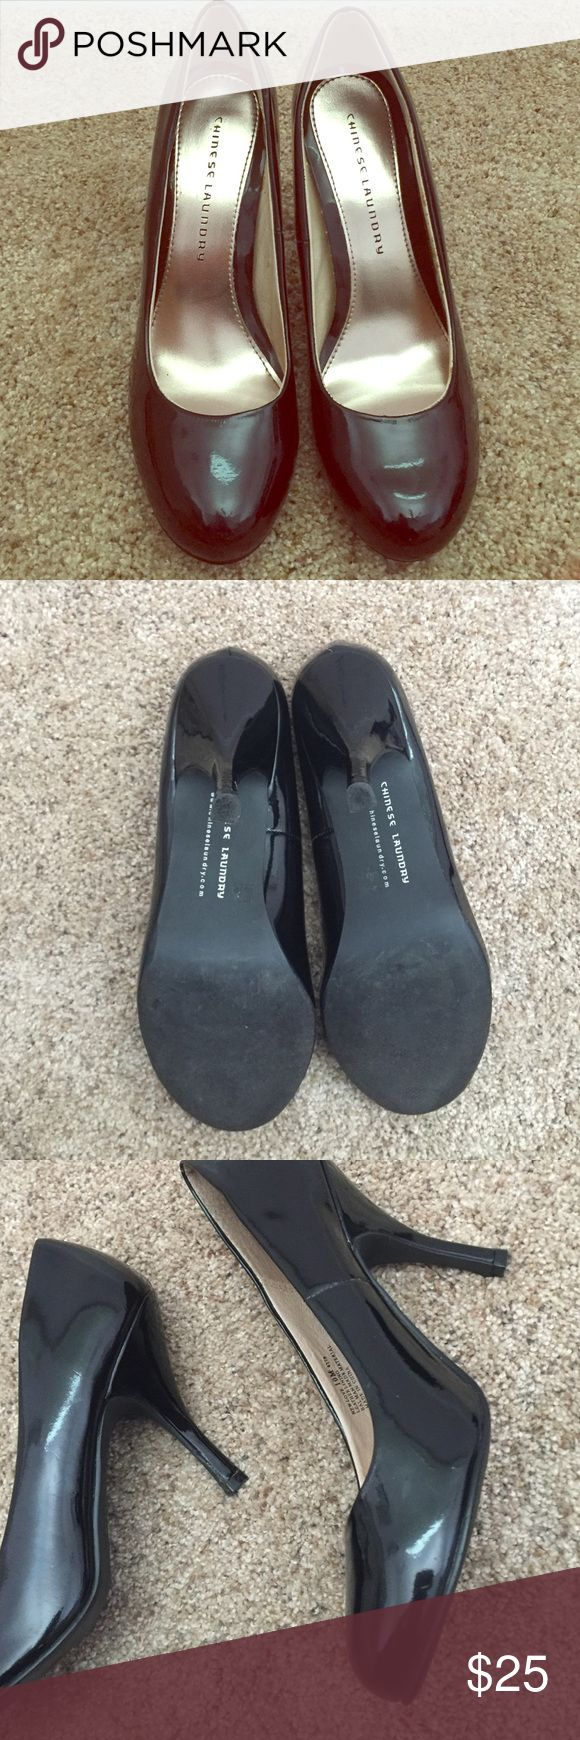 Chinese Laundry Black Pumps 4 inch Heel I wore these Chinese Laundry heels once for about 10 minutes haha... They are size ten and have a four inch heel... These are CLASSICS that any closet could use👠 also no flaws to the surface😊 Chinese Laundry Shoes Heels